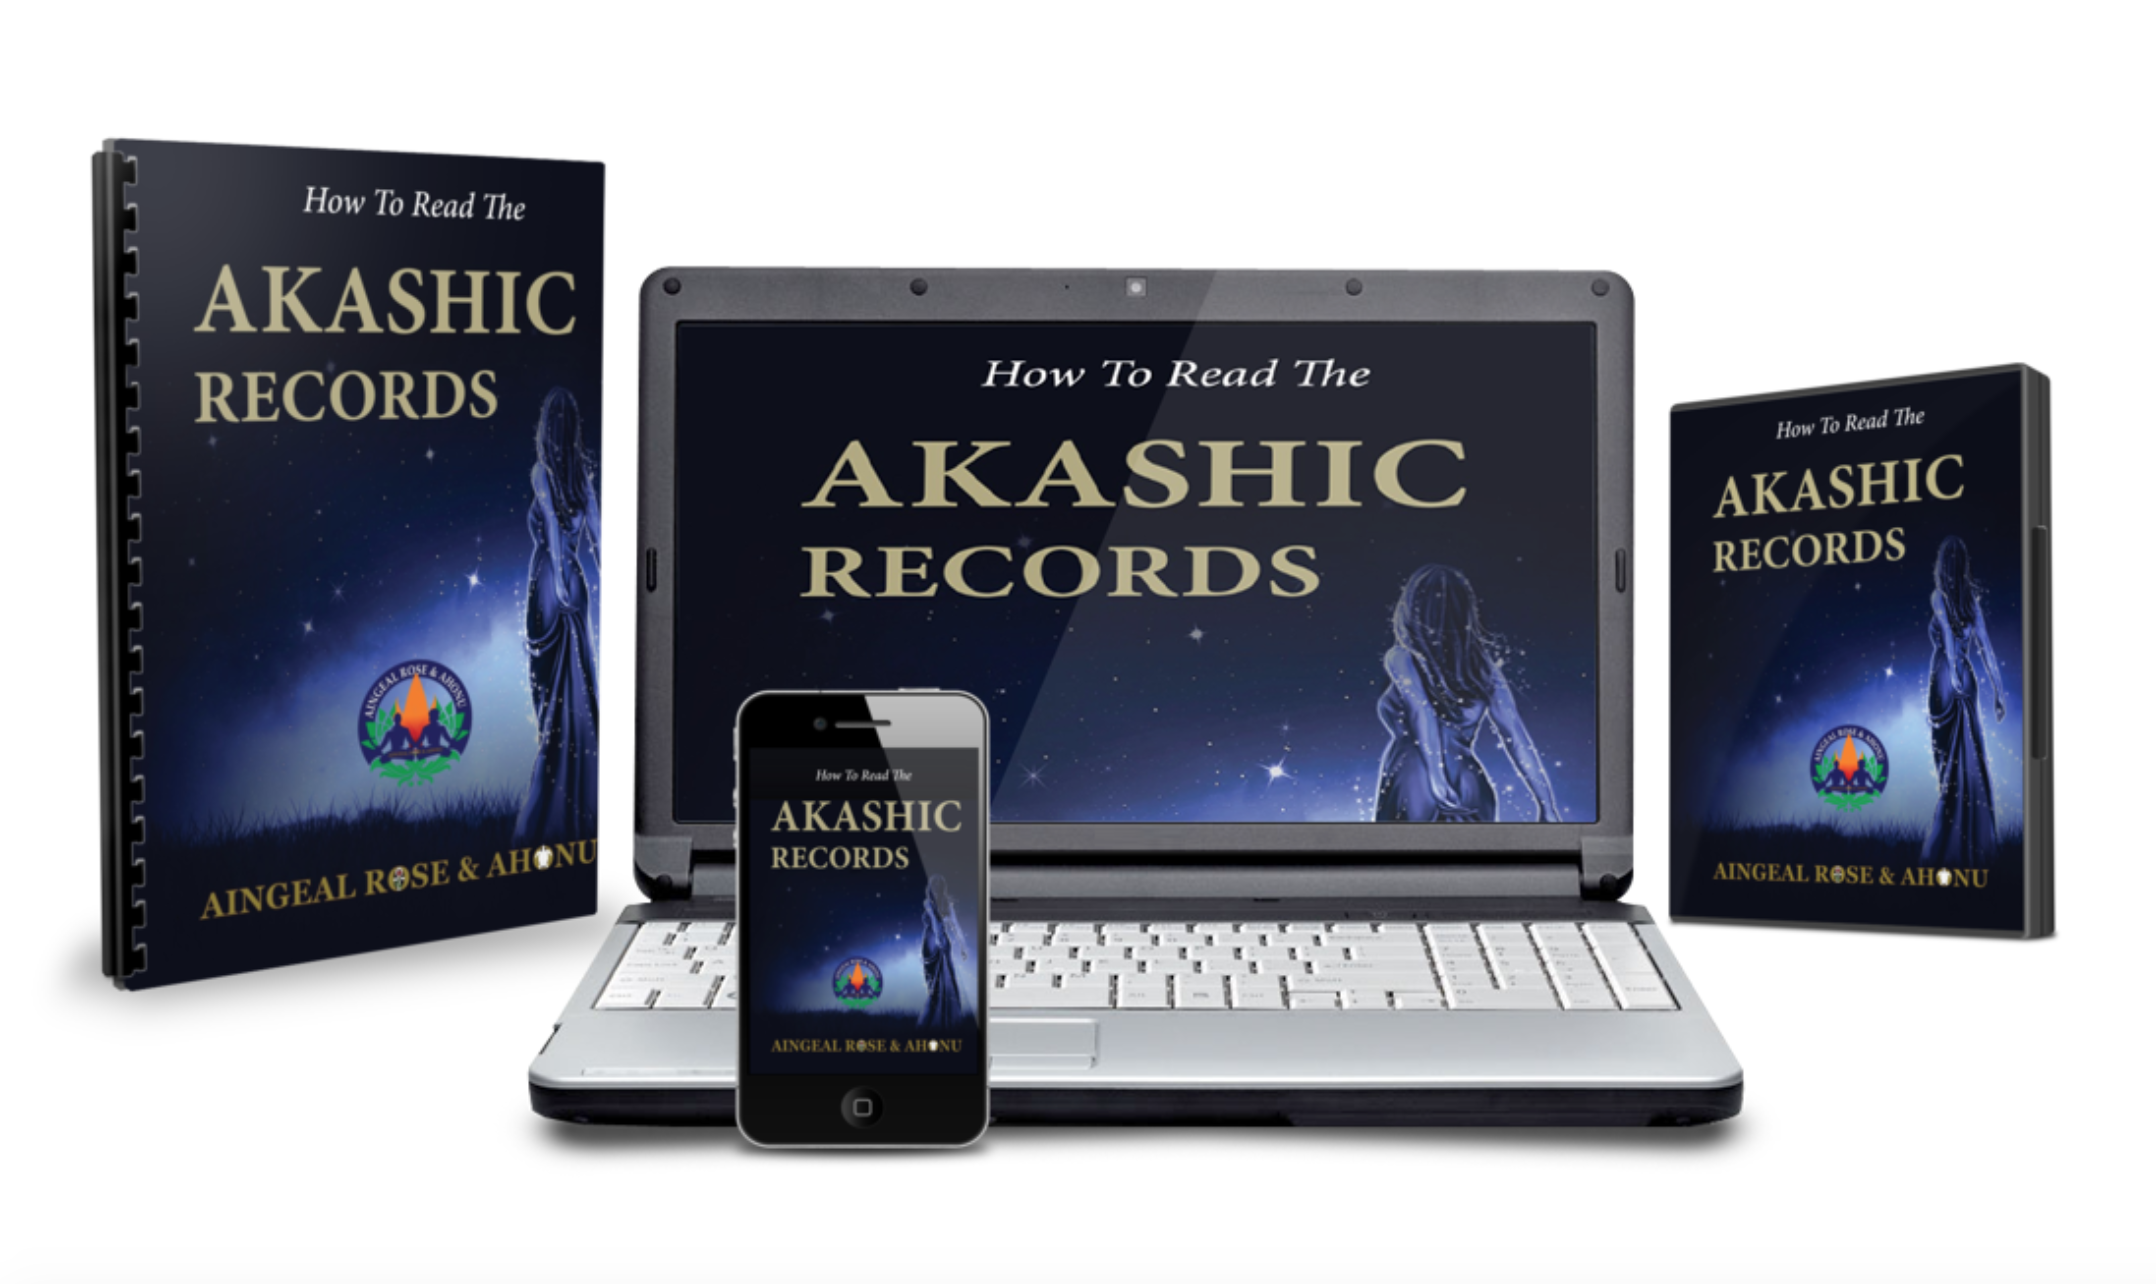 Get 24% off, and get the first 12 books of Answers From The Akashic Records free when you order before 15th June